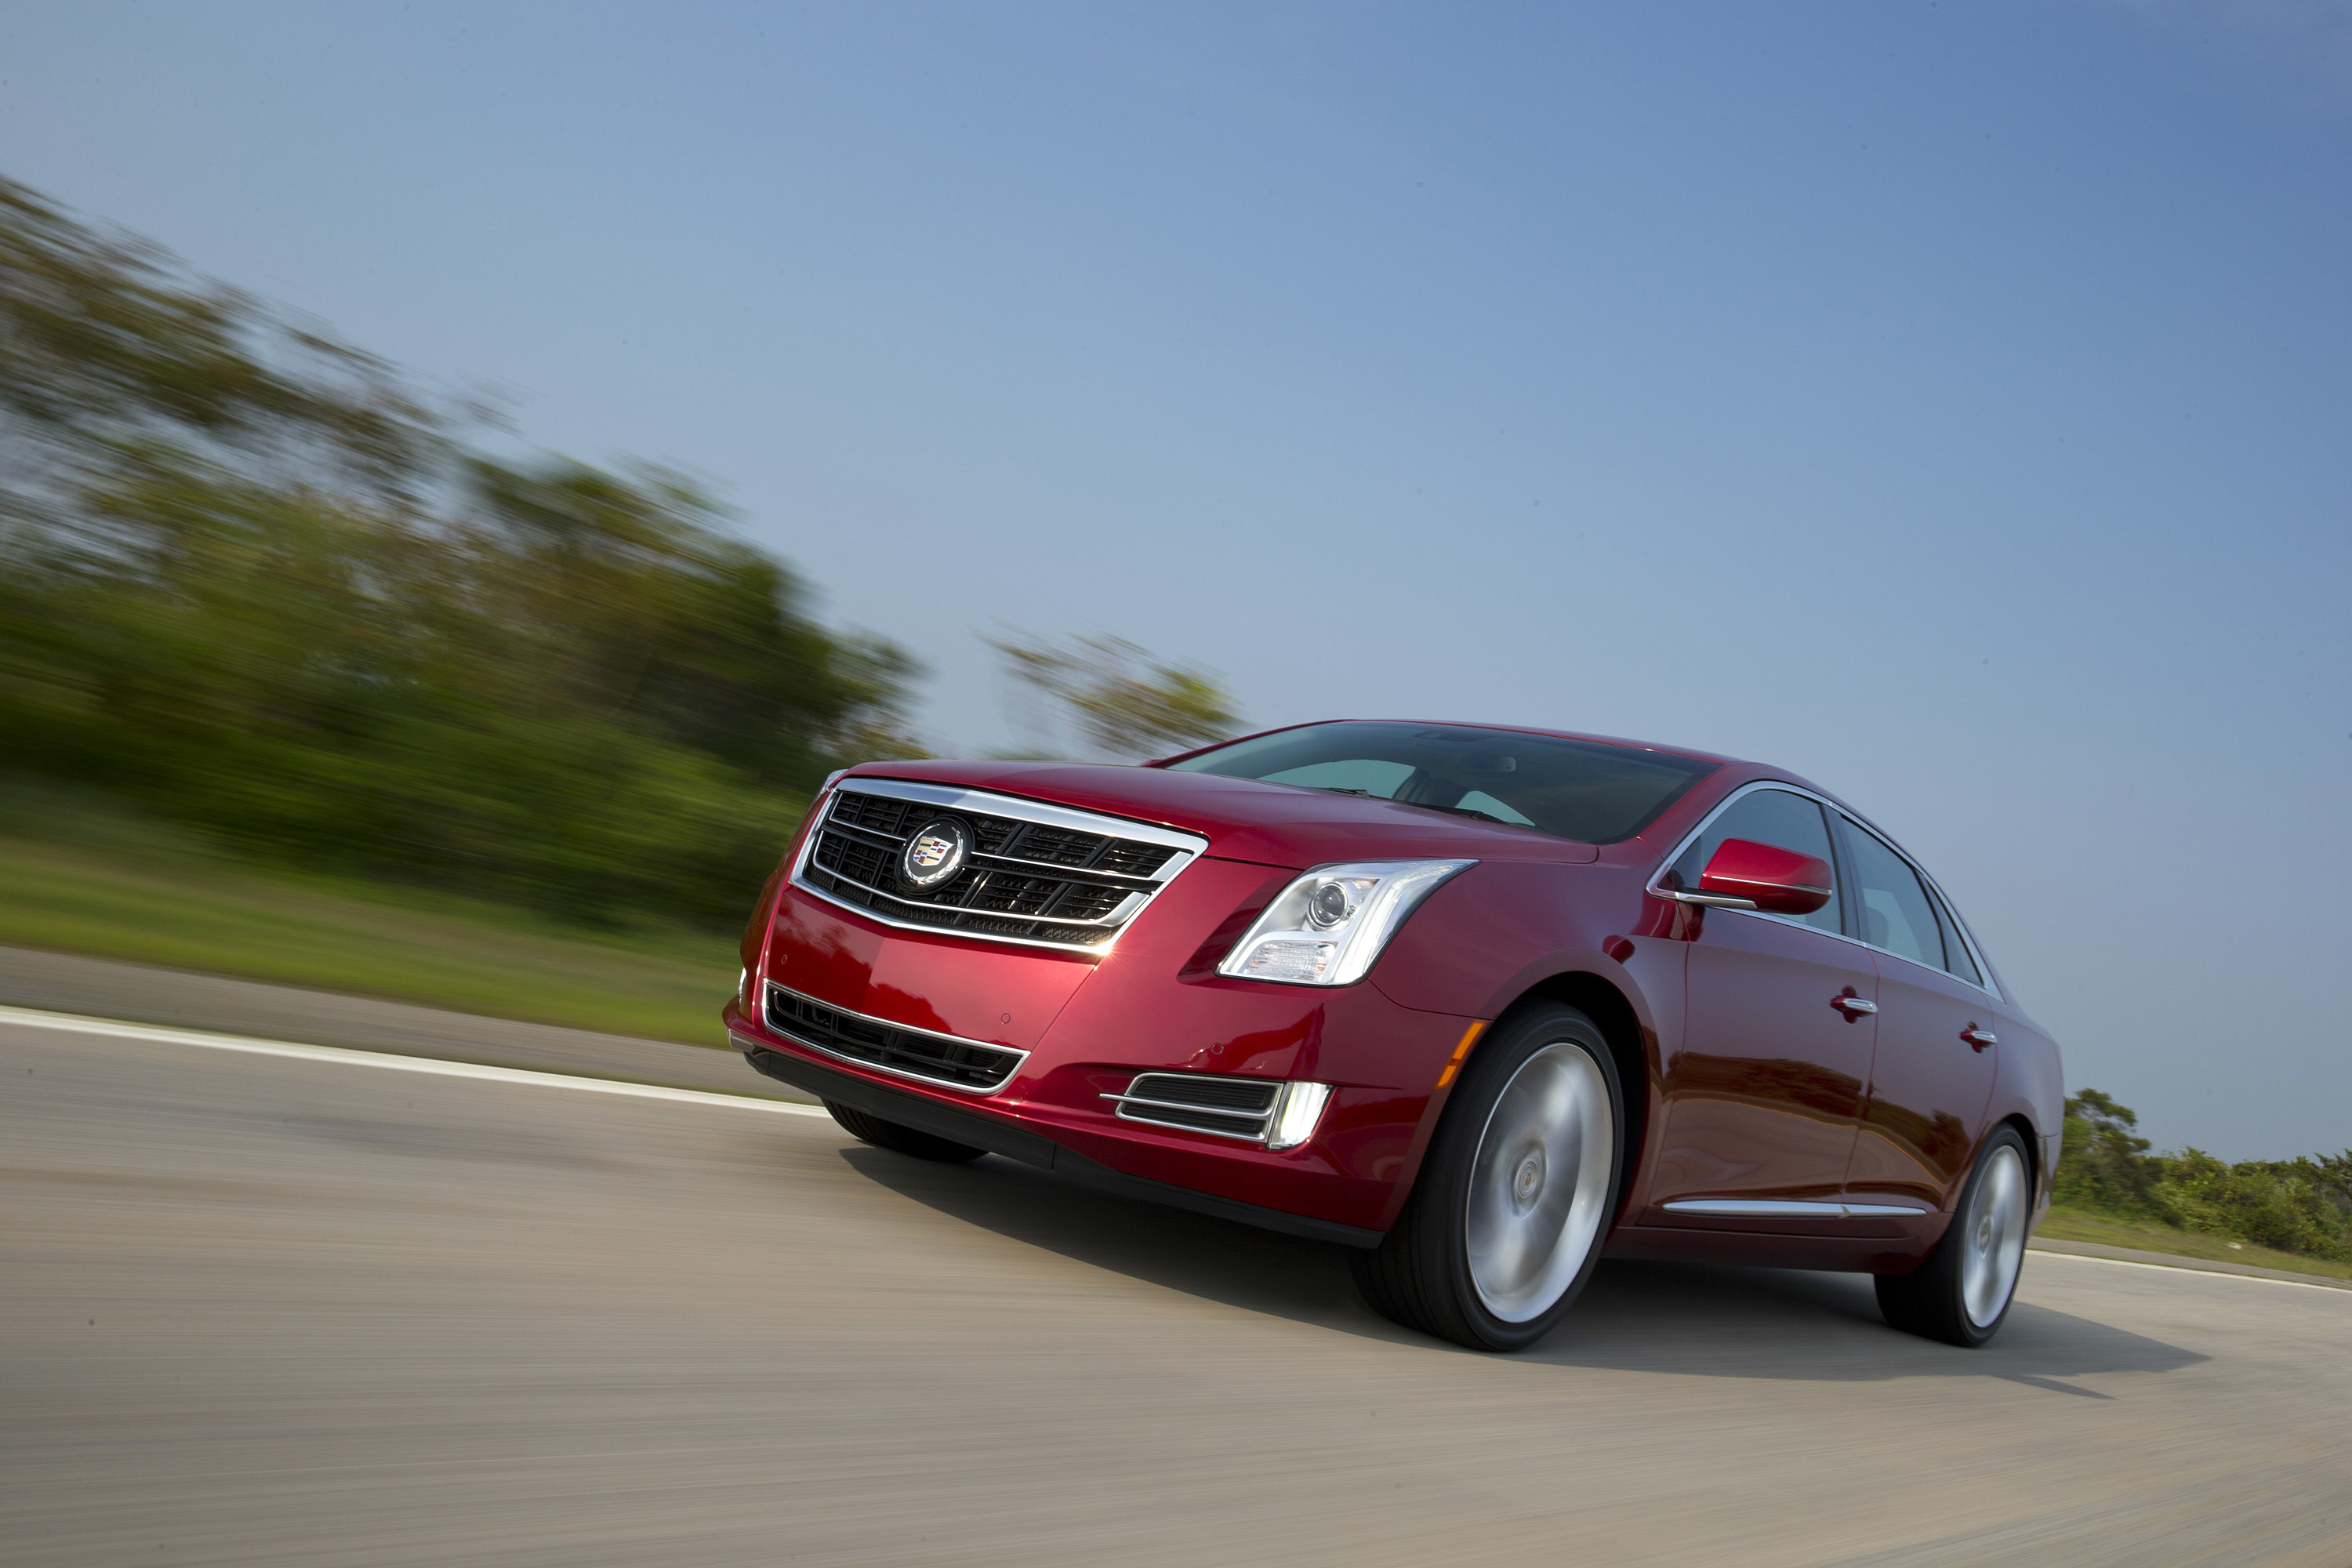 xts coupe speed top cars cadillac msrp ats